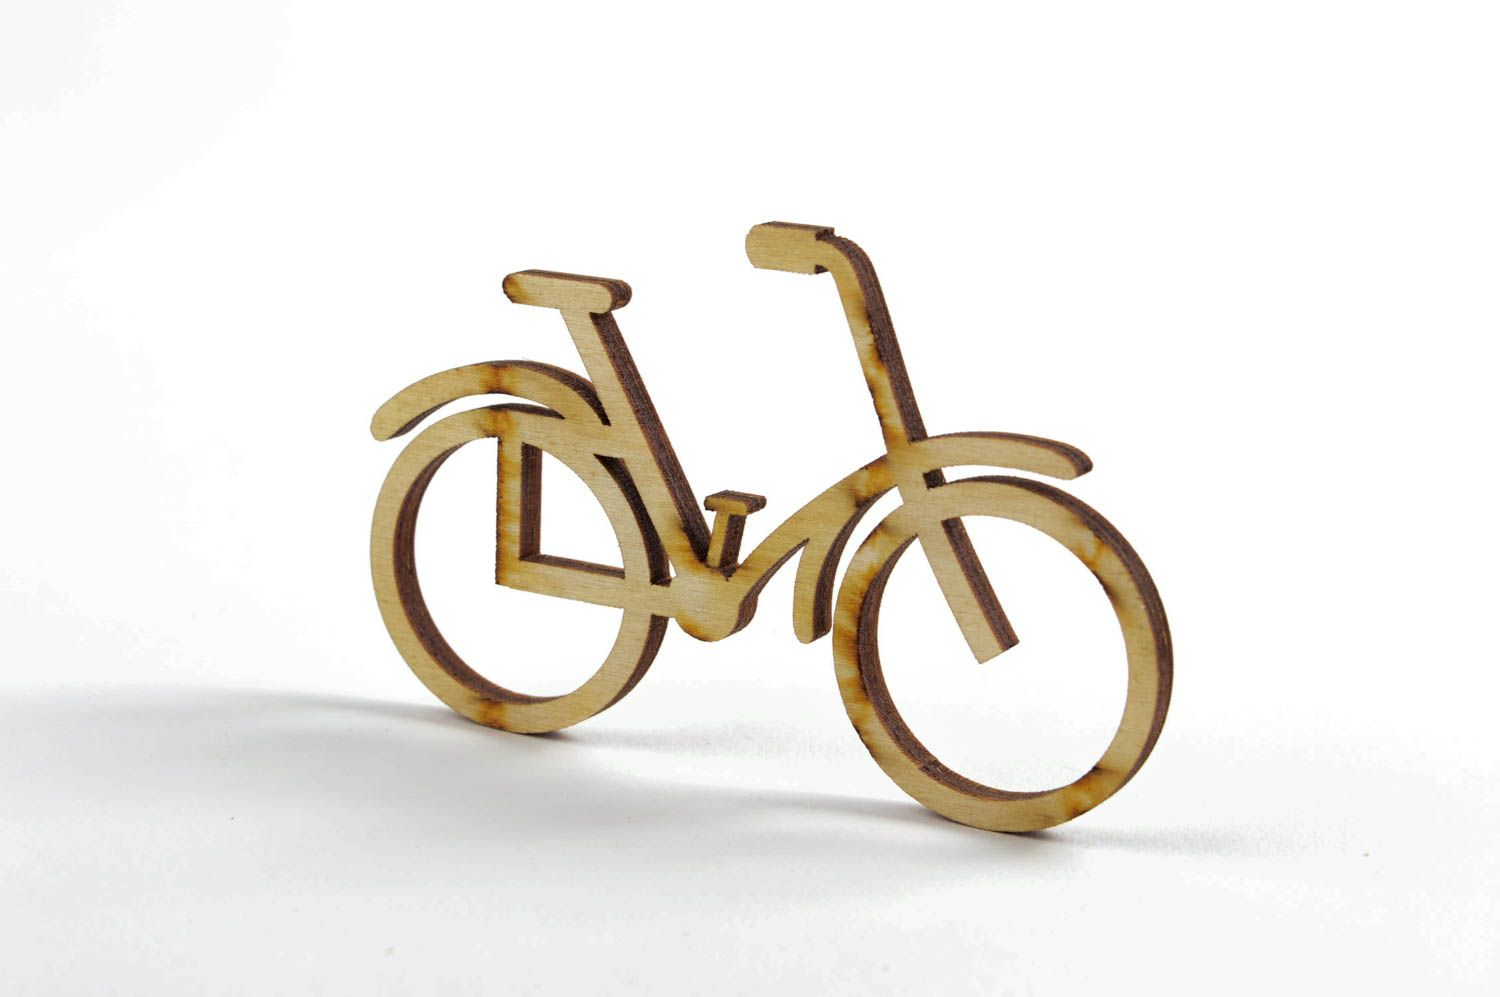 madeheart miniatur bemalen handmade deko fahrrad aus holz deko figur f r kinder gerschenk. Black Bedroom Furniture Sets. Home Design Ideas